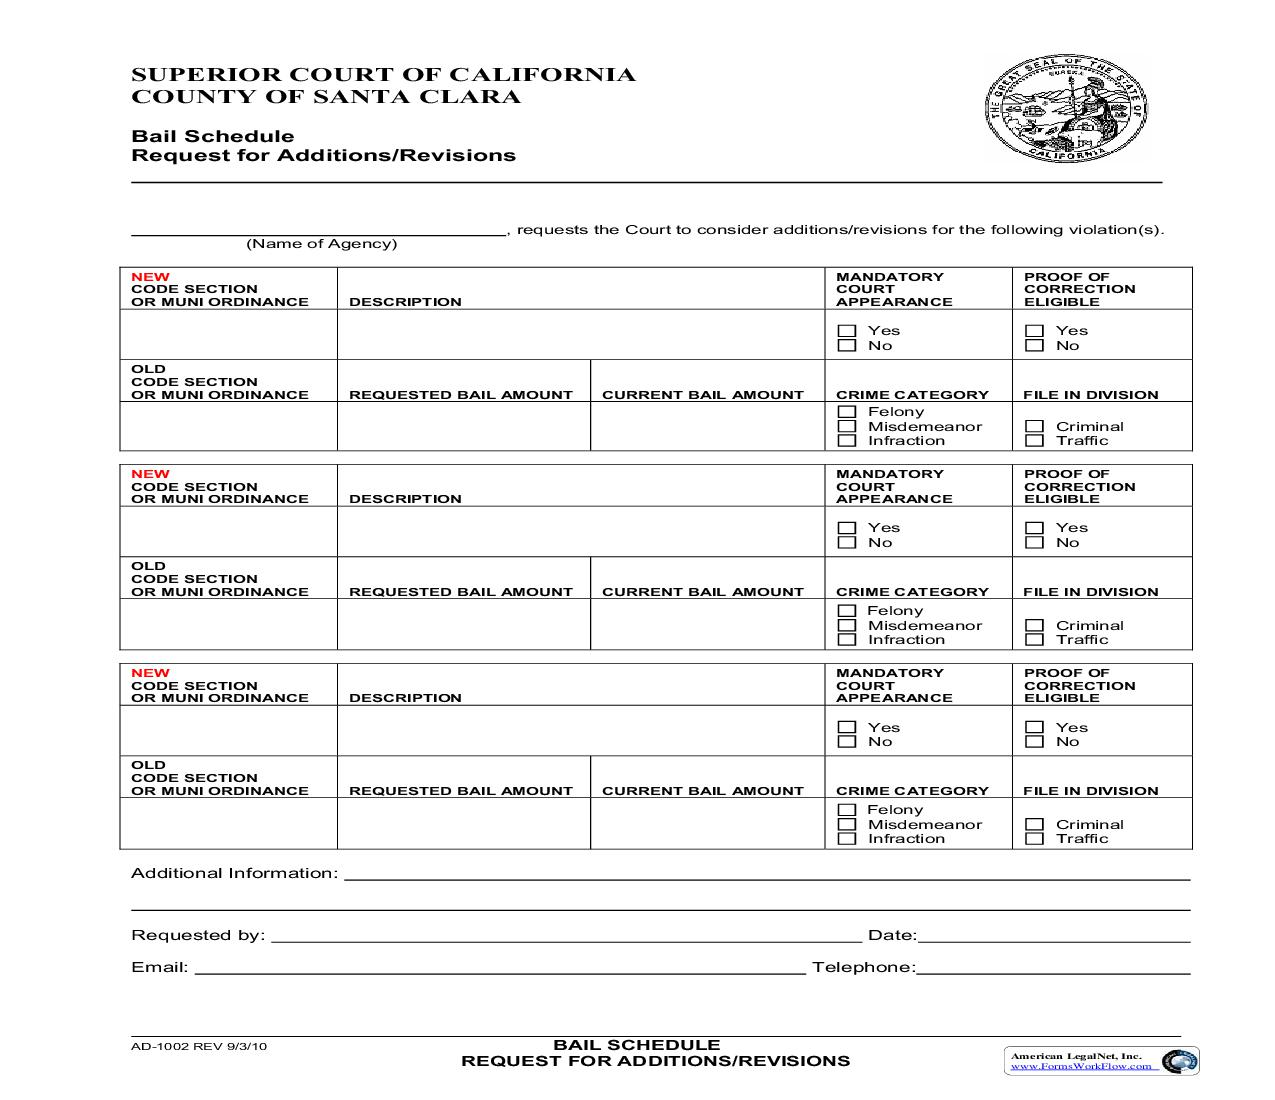 Bail Schedule Request For Additions-Revisions {AD-1002} | Pdf Fpdf Doc Docx | California